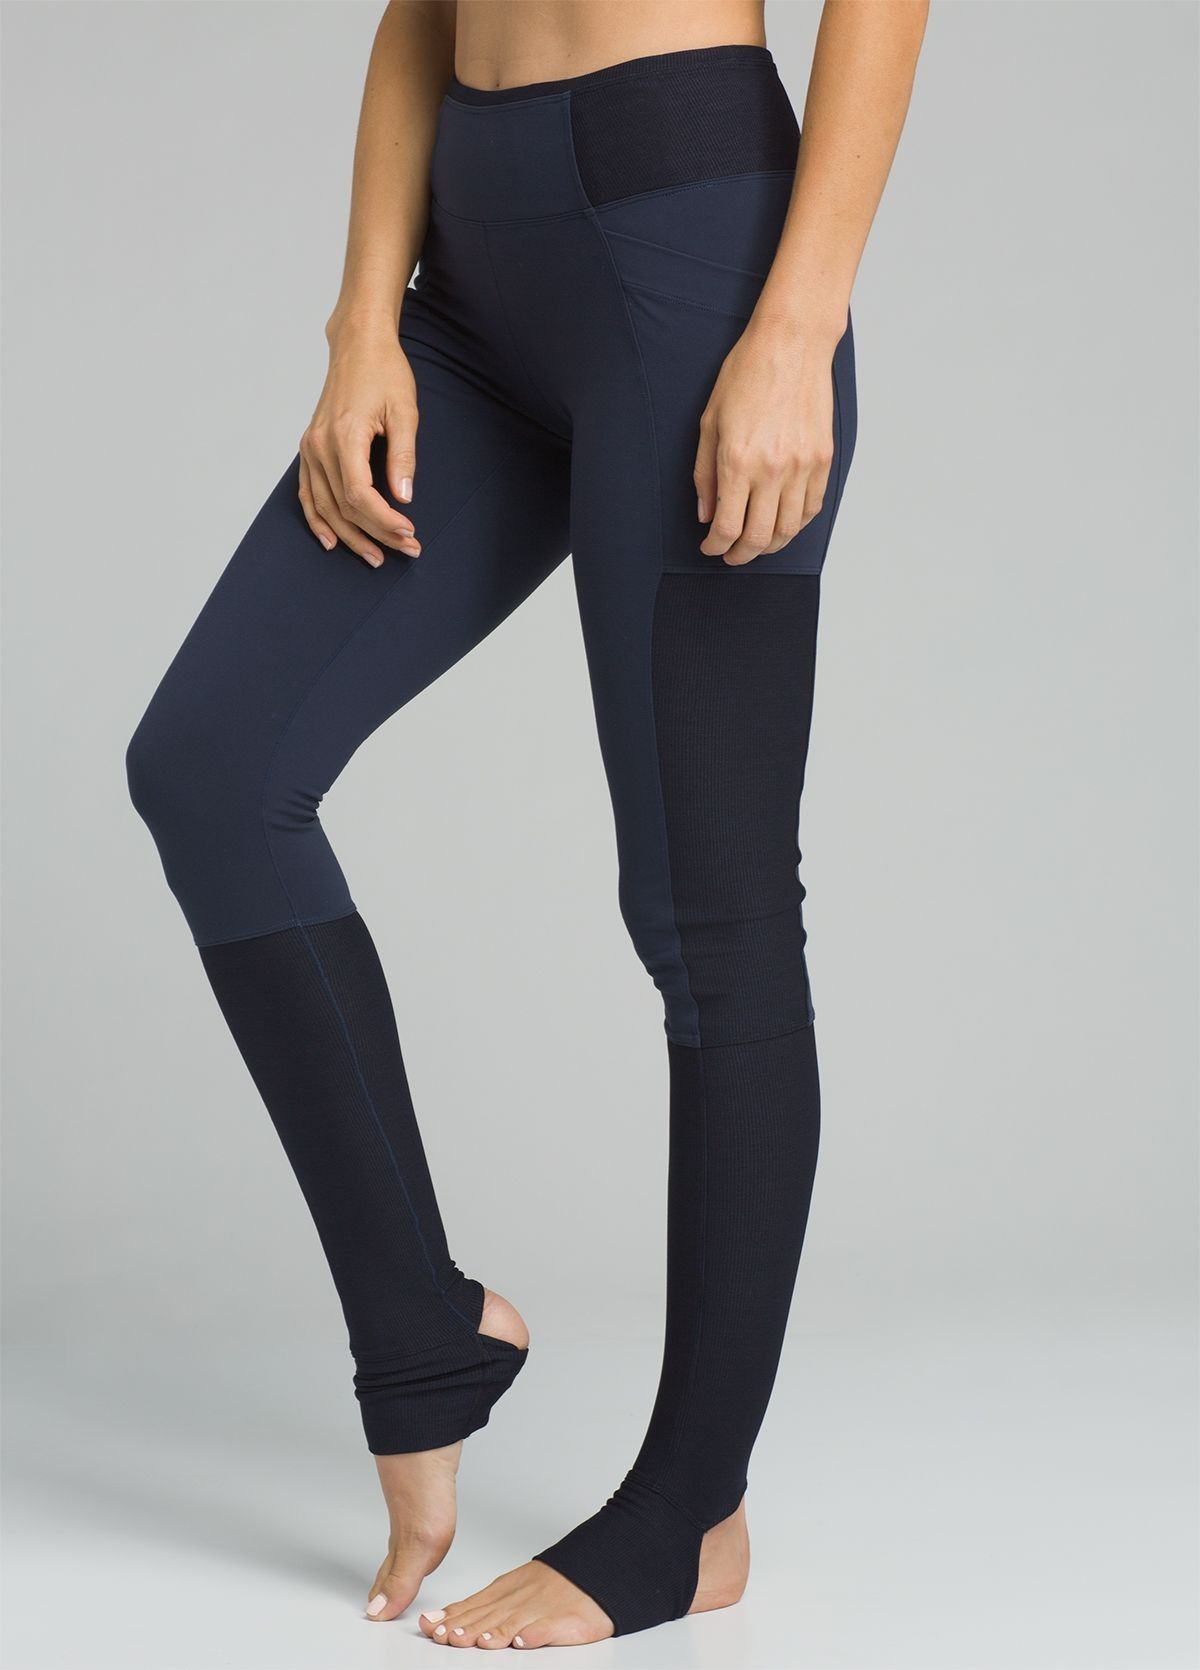 Just Love Stretch Yoga Pants for Women with Hidden Pocket